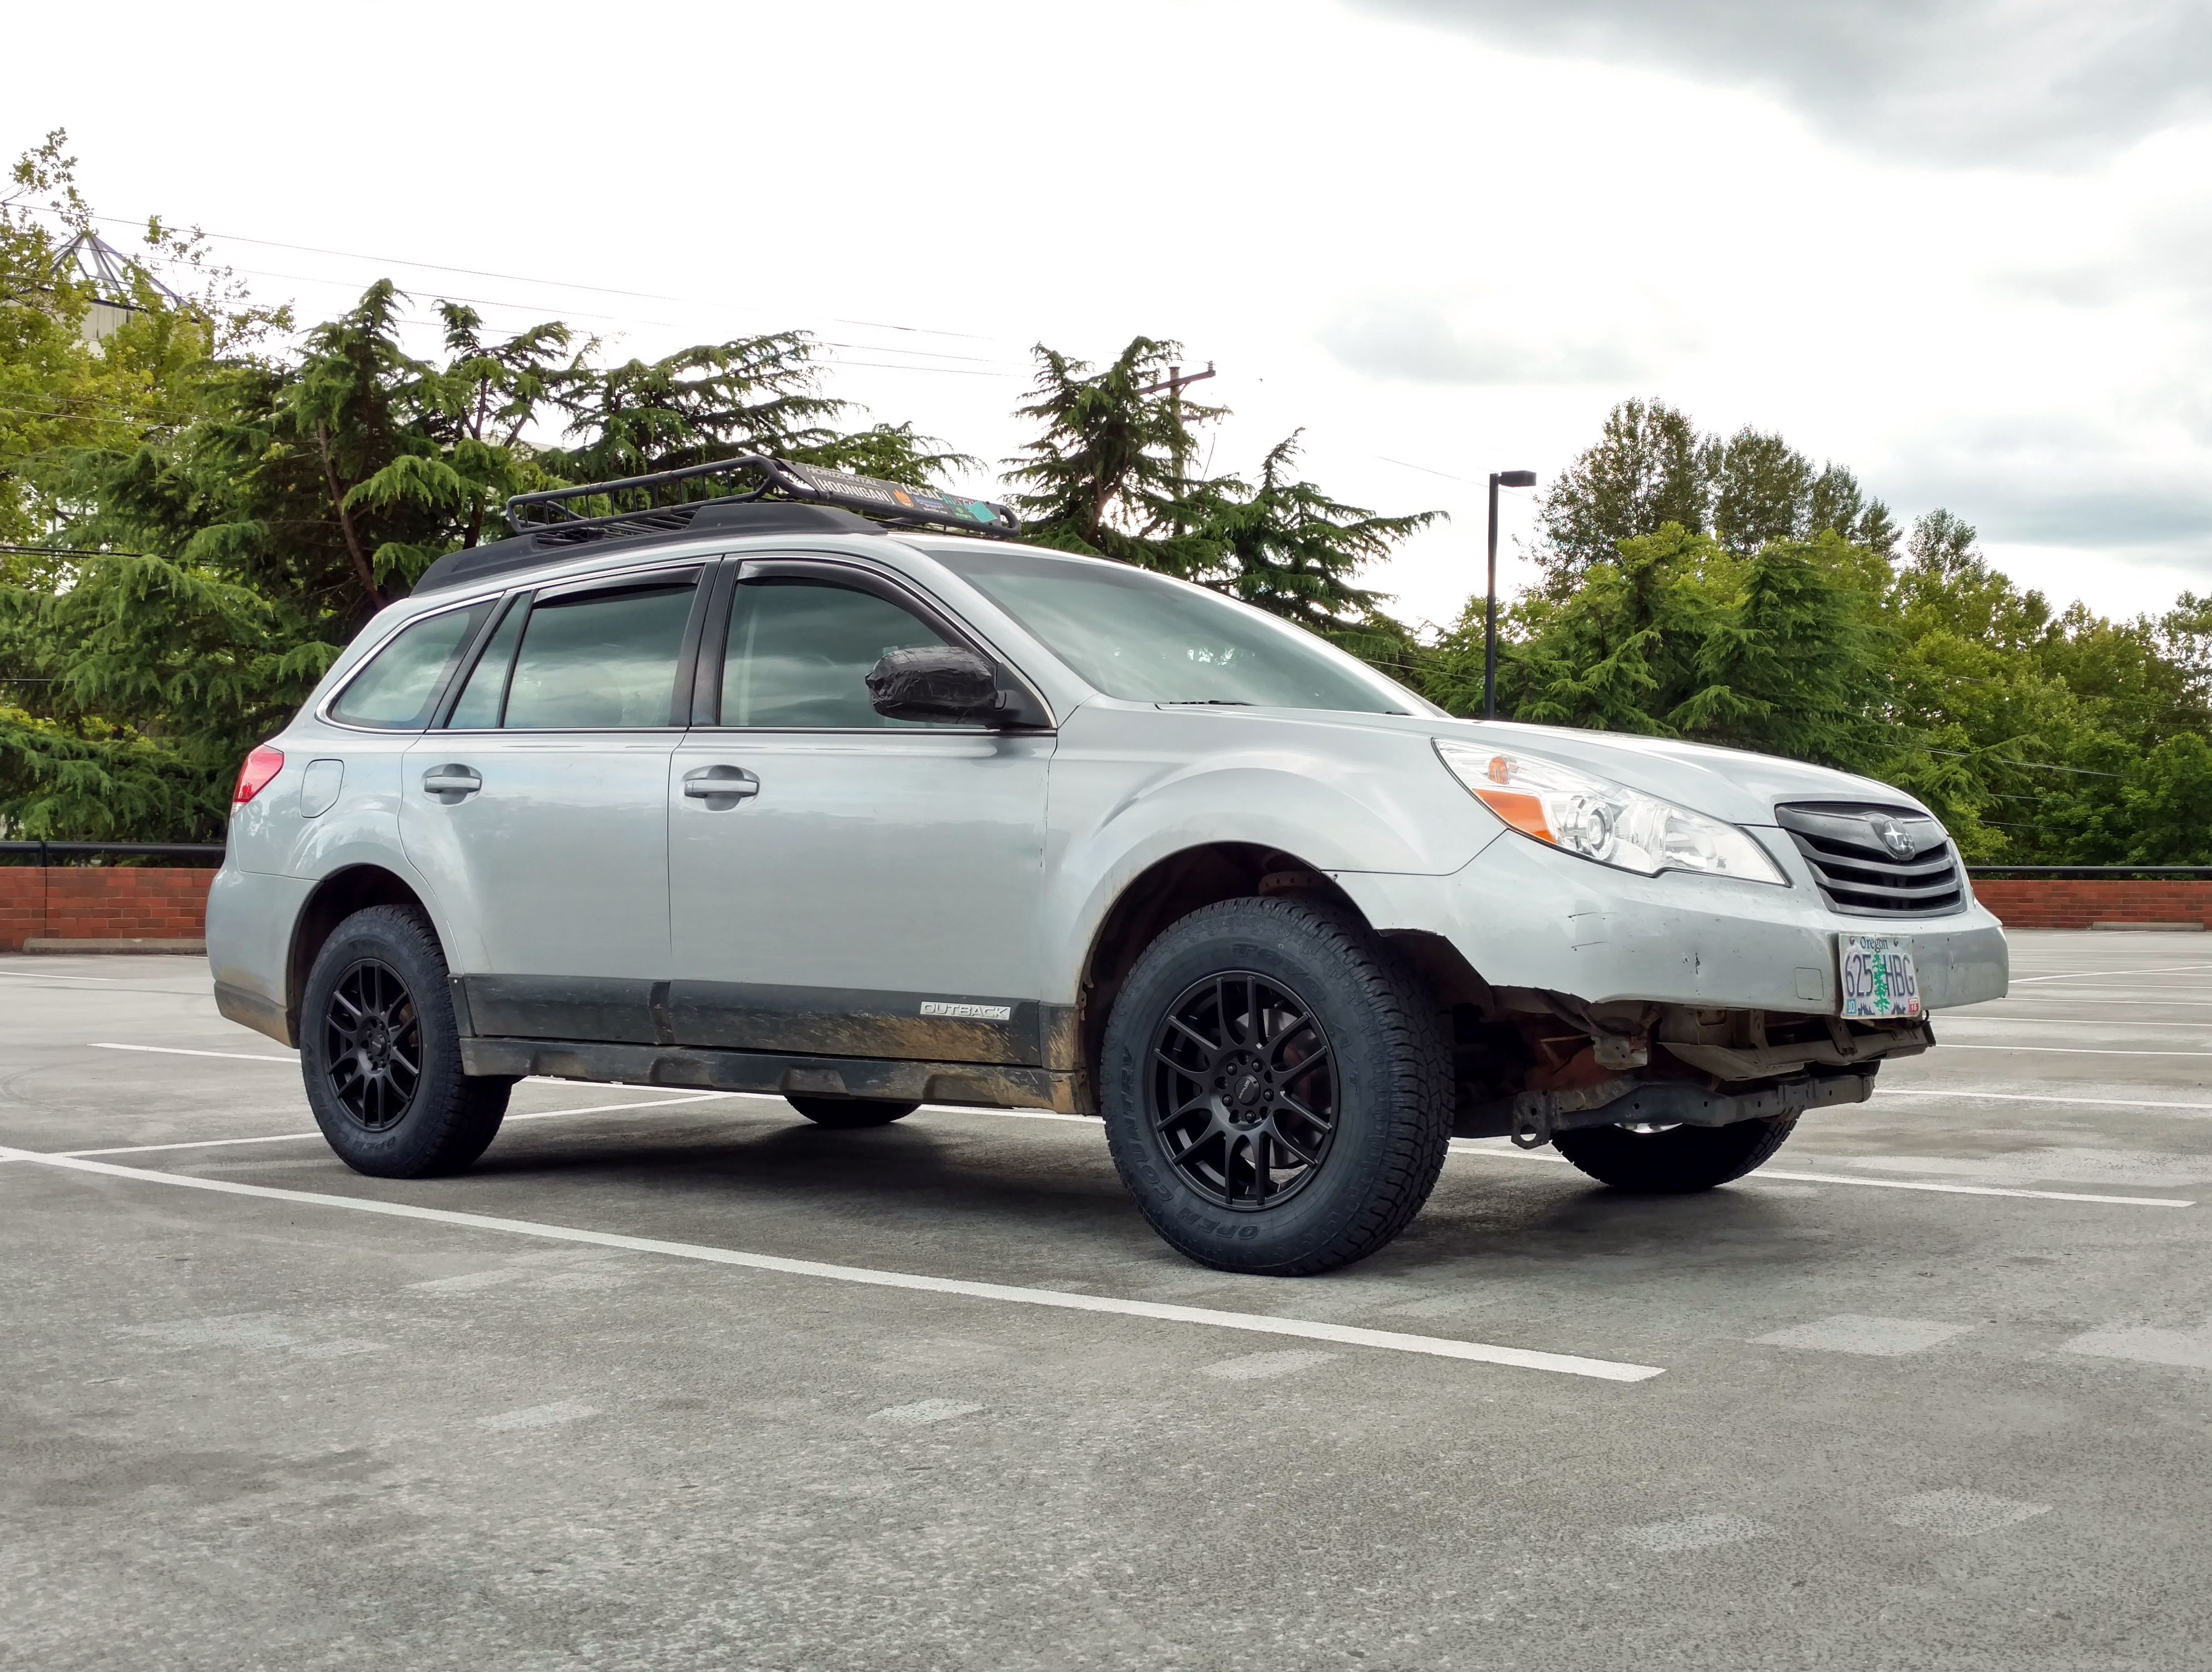 2012 subaru outback 25l 6 speed manual flowmaster 40 series on 2012 subaru outback 25l 6 speed manual flowmaster 40 series on 141 mystique wheels vanachro Images